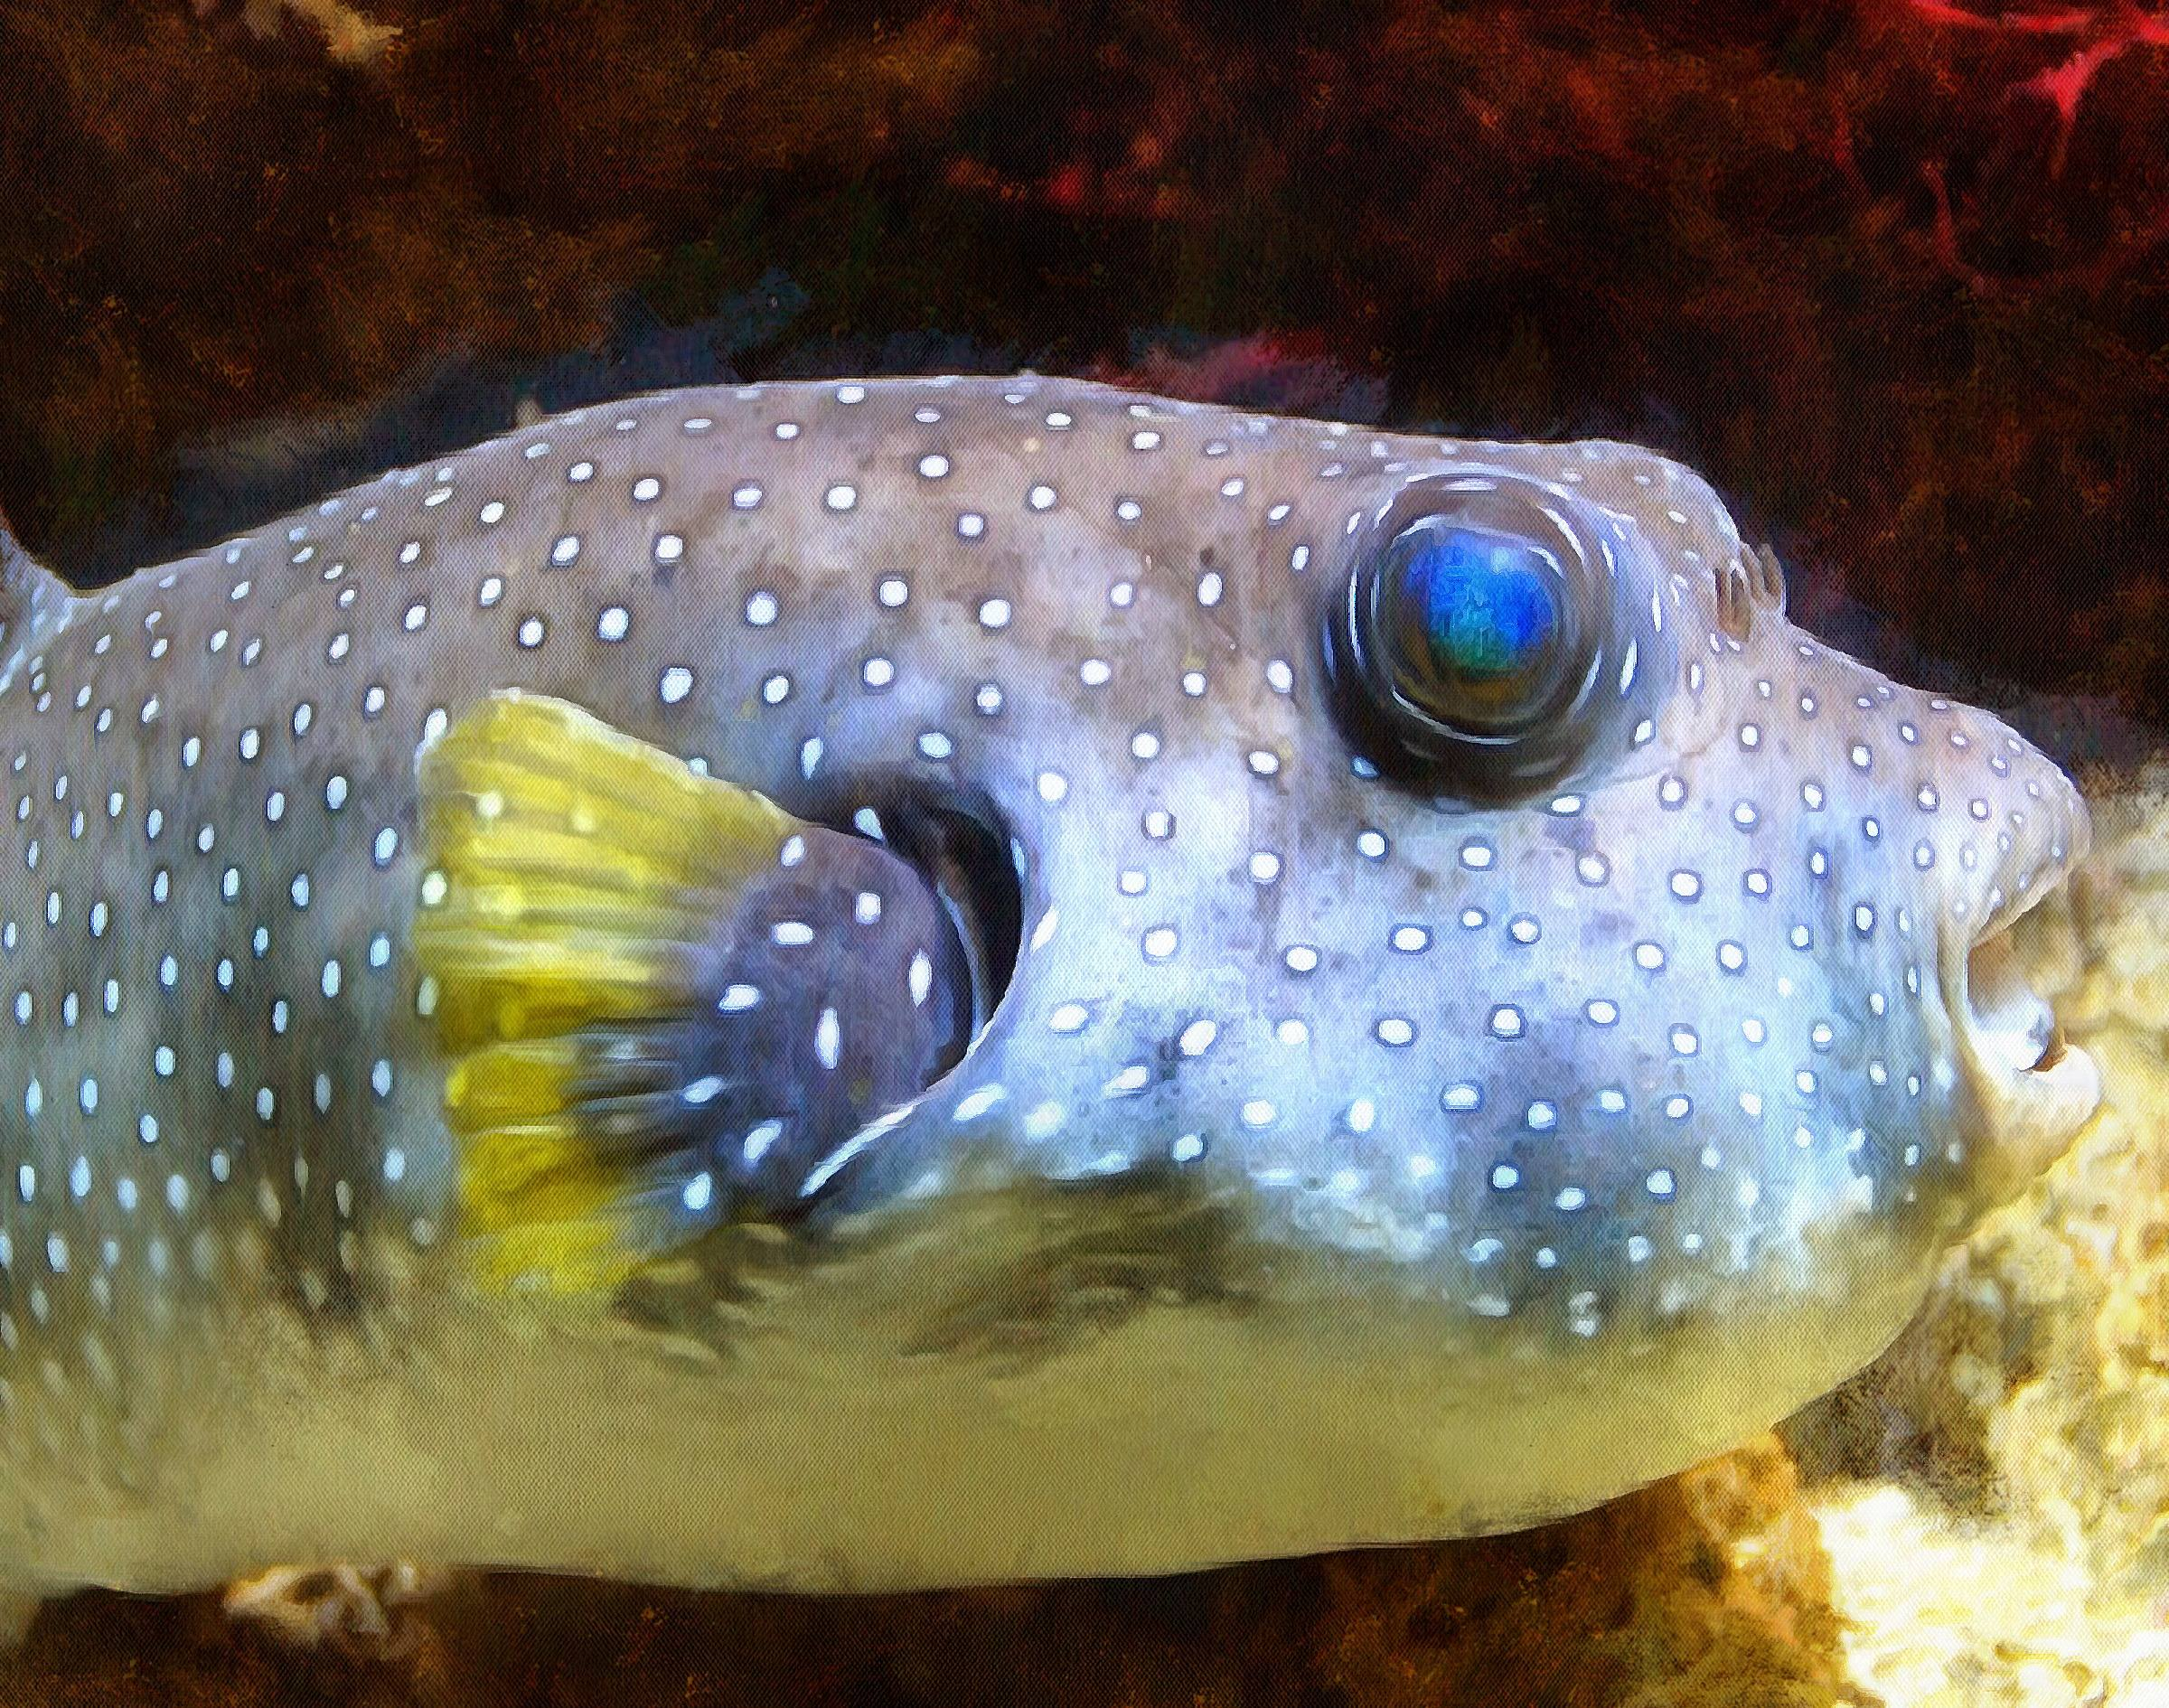 Puffer fish facts interesting facts about puffer fish for Mini puffer fish